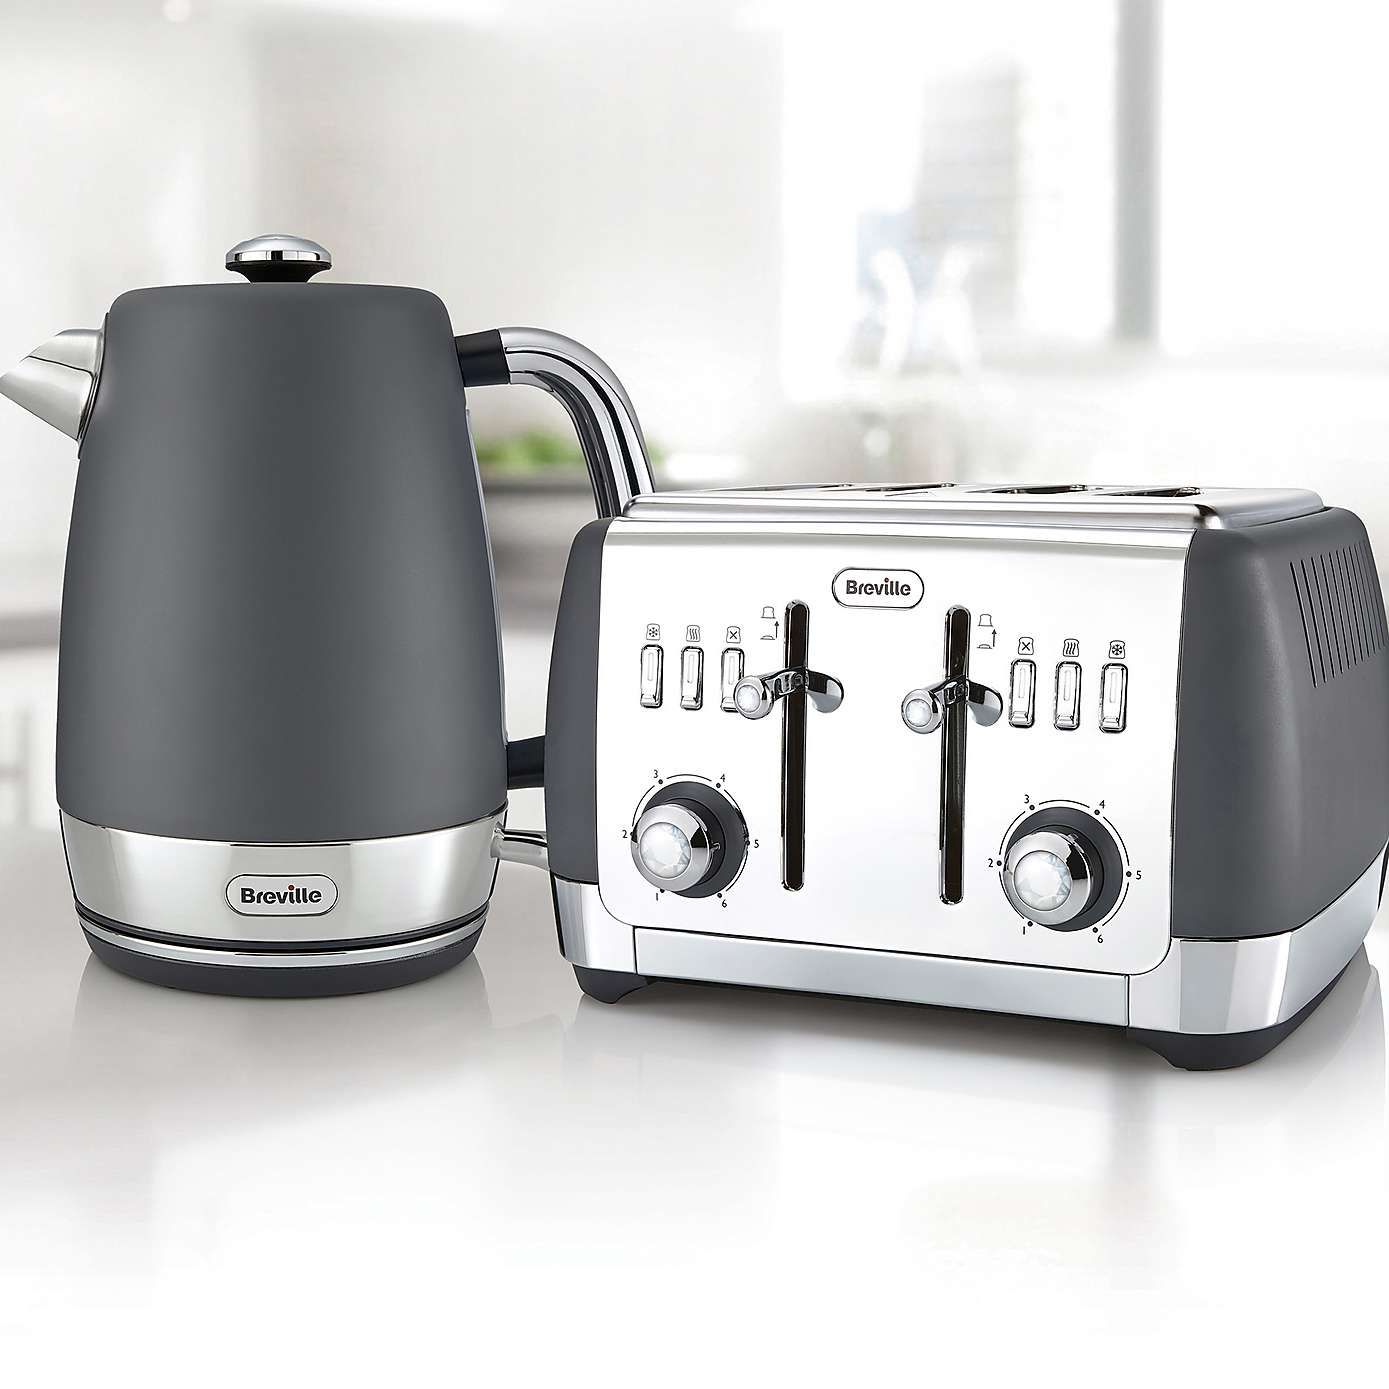 Breville Vkj994 Strata Collection 1 7l Grey Kettle Kettle And Toaster Set Kettle And Toaster Kettle